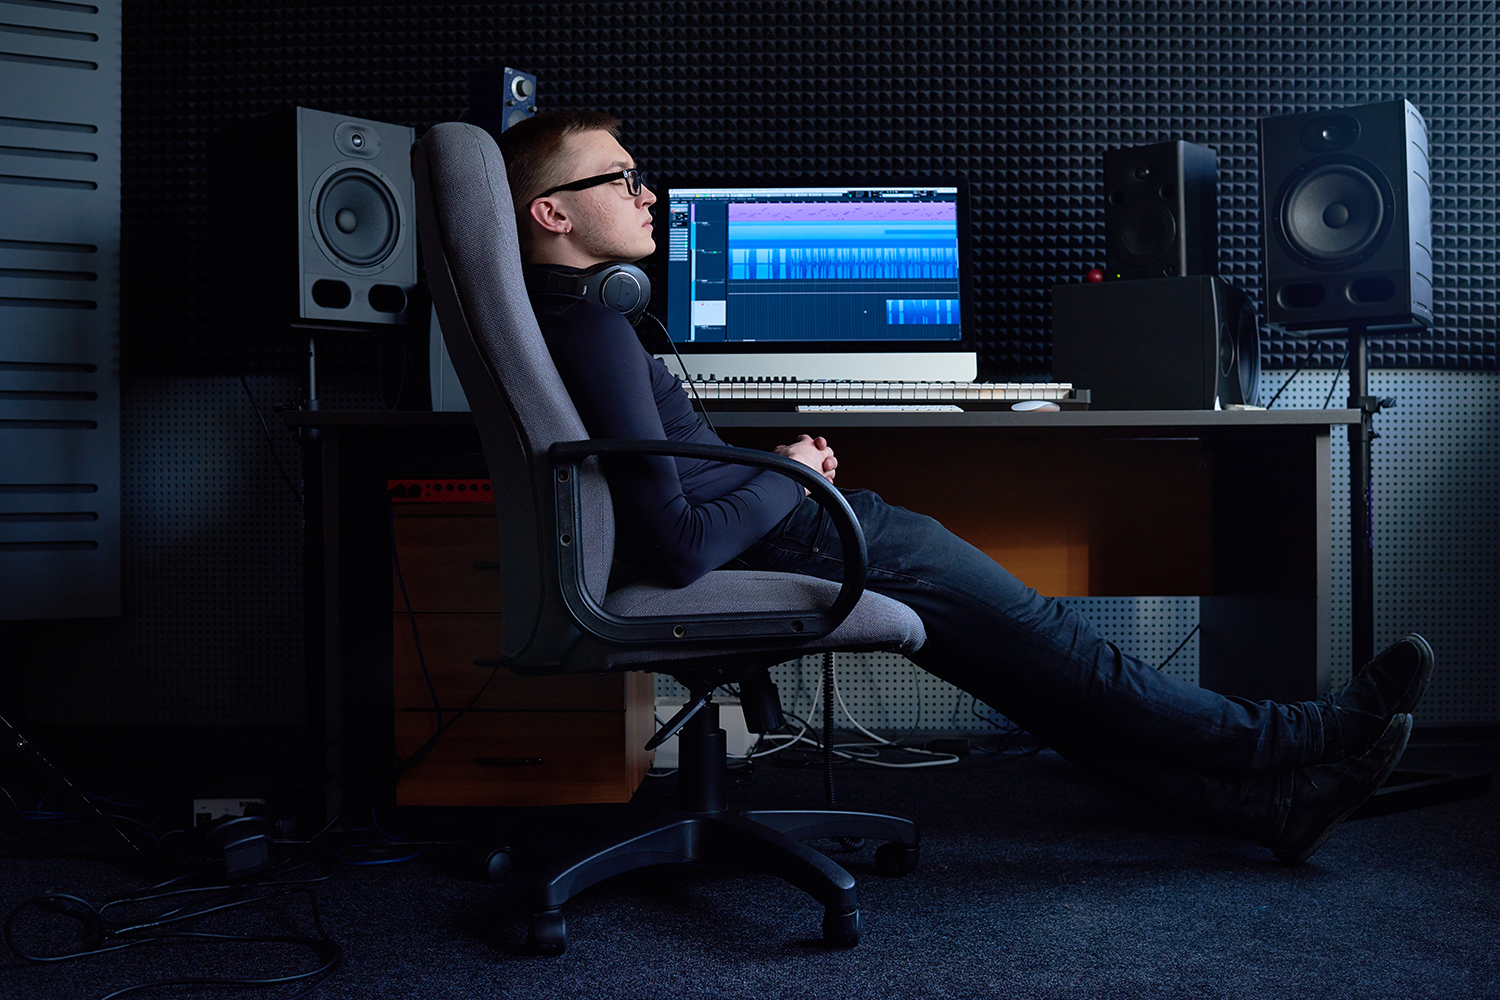 How Starting Over Can Help If You're Bored With Making Music